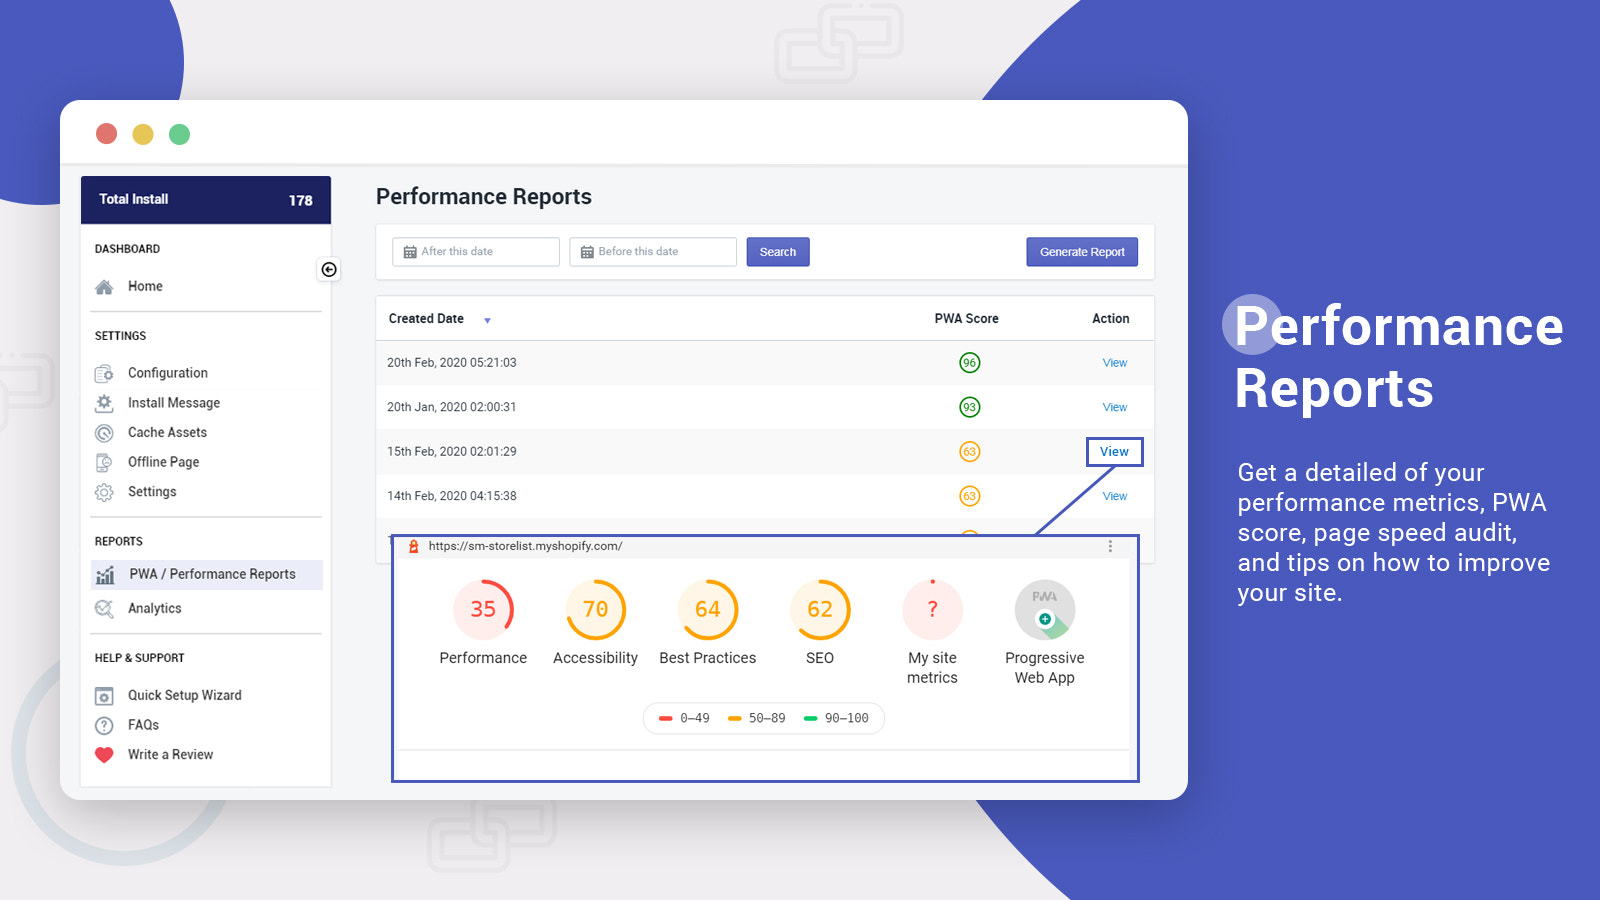 detailed speed report for performance, audit tips, etc.